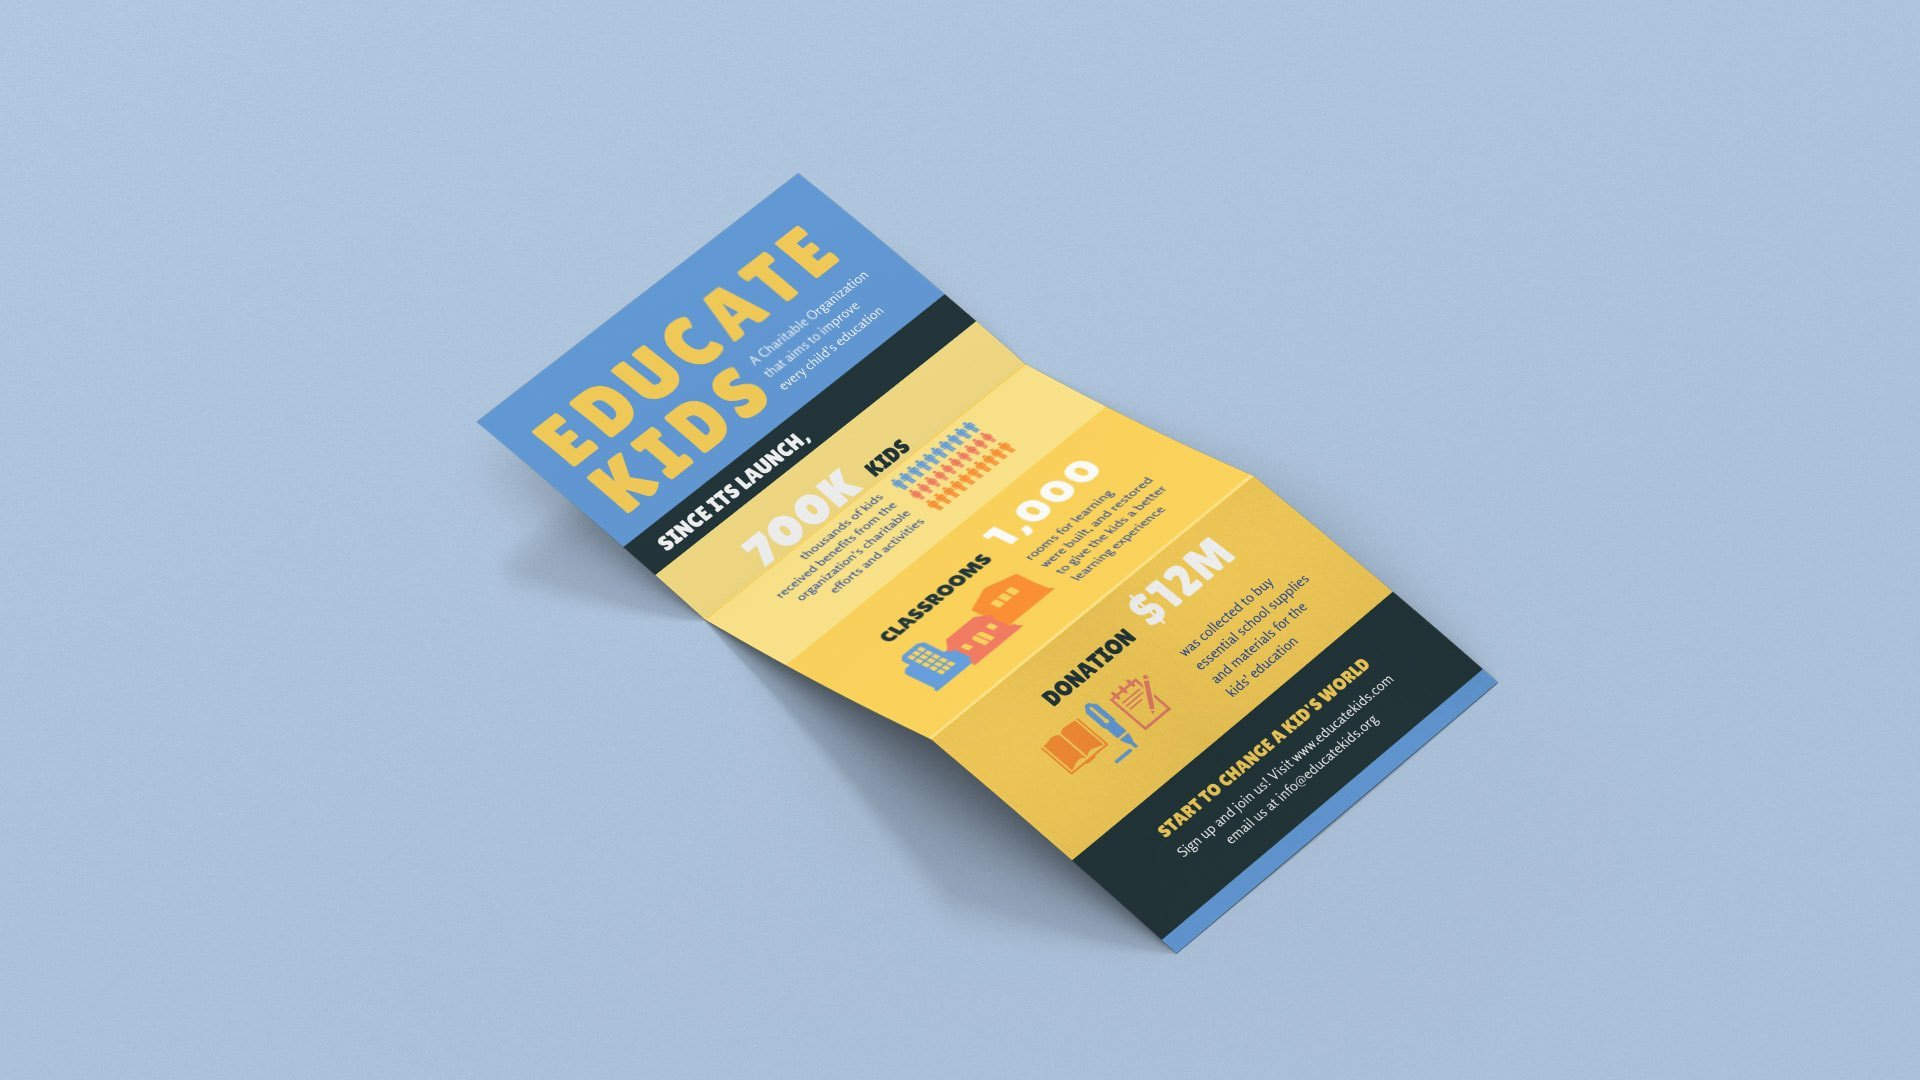 How designers do it - 15 easy steps to design an infographic from scratch featured image